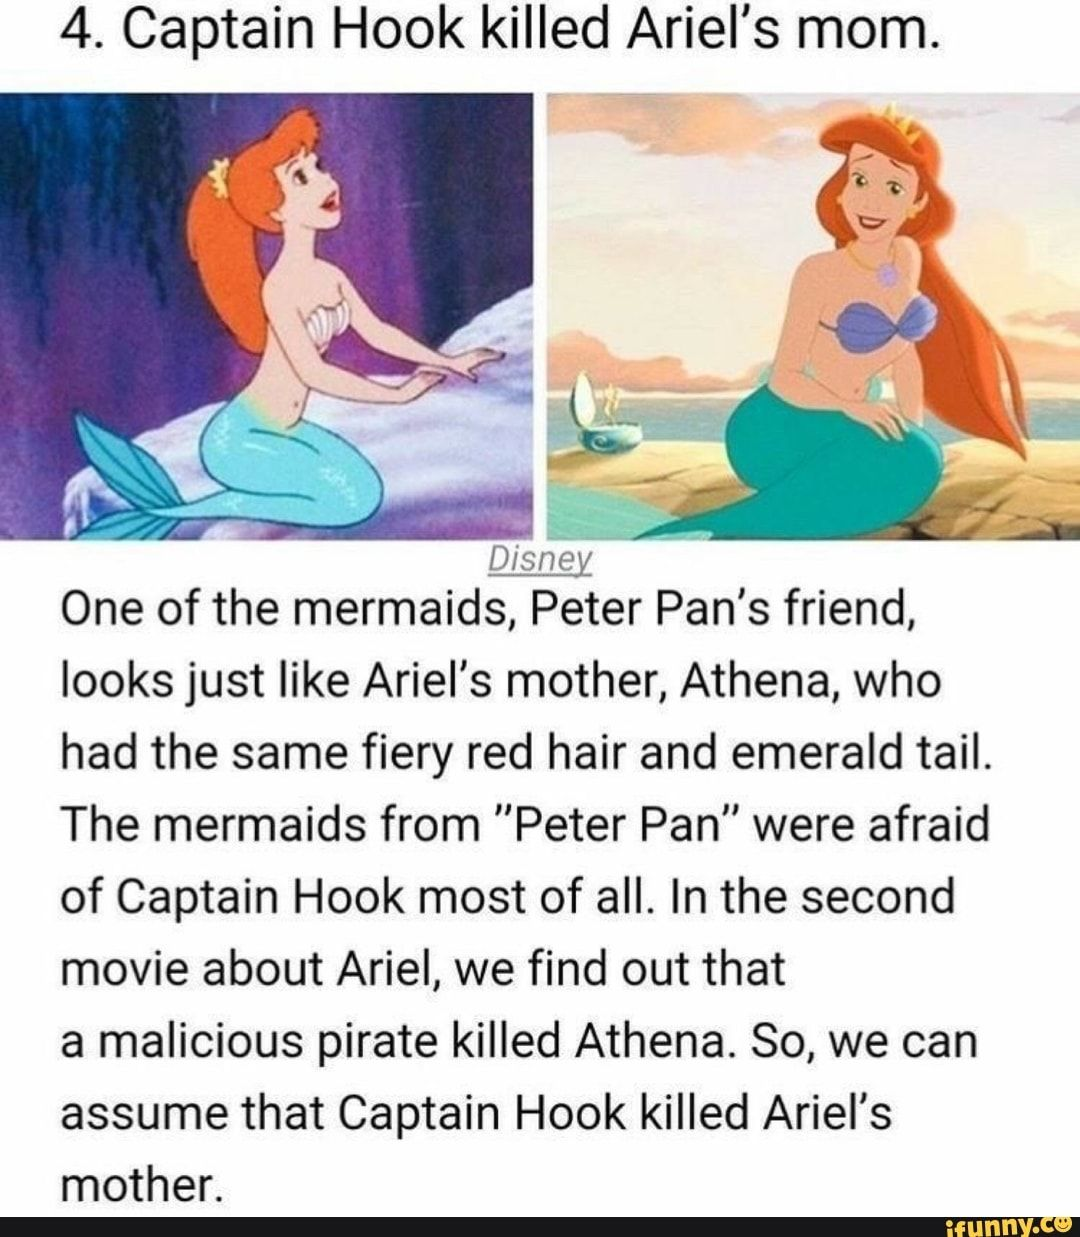 4. Captain Hook killed Ariel's mom. Disney One of the mermaids, Peter Pan's friend, looks just like Ariel's mother, Athena, who had the same fiery red hair and emerald tail. The mermaids from